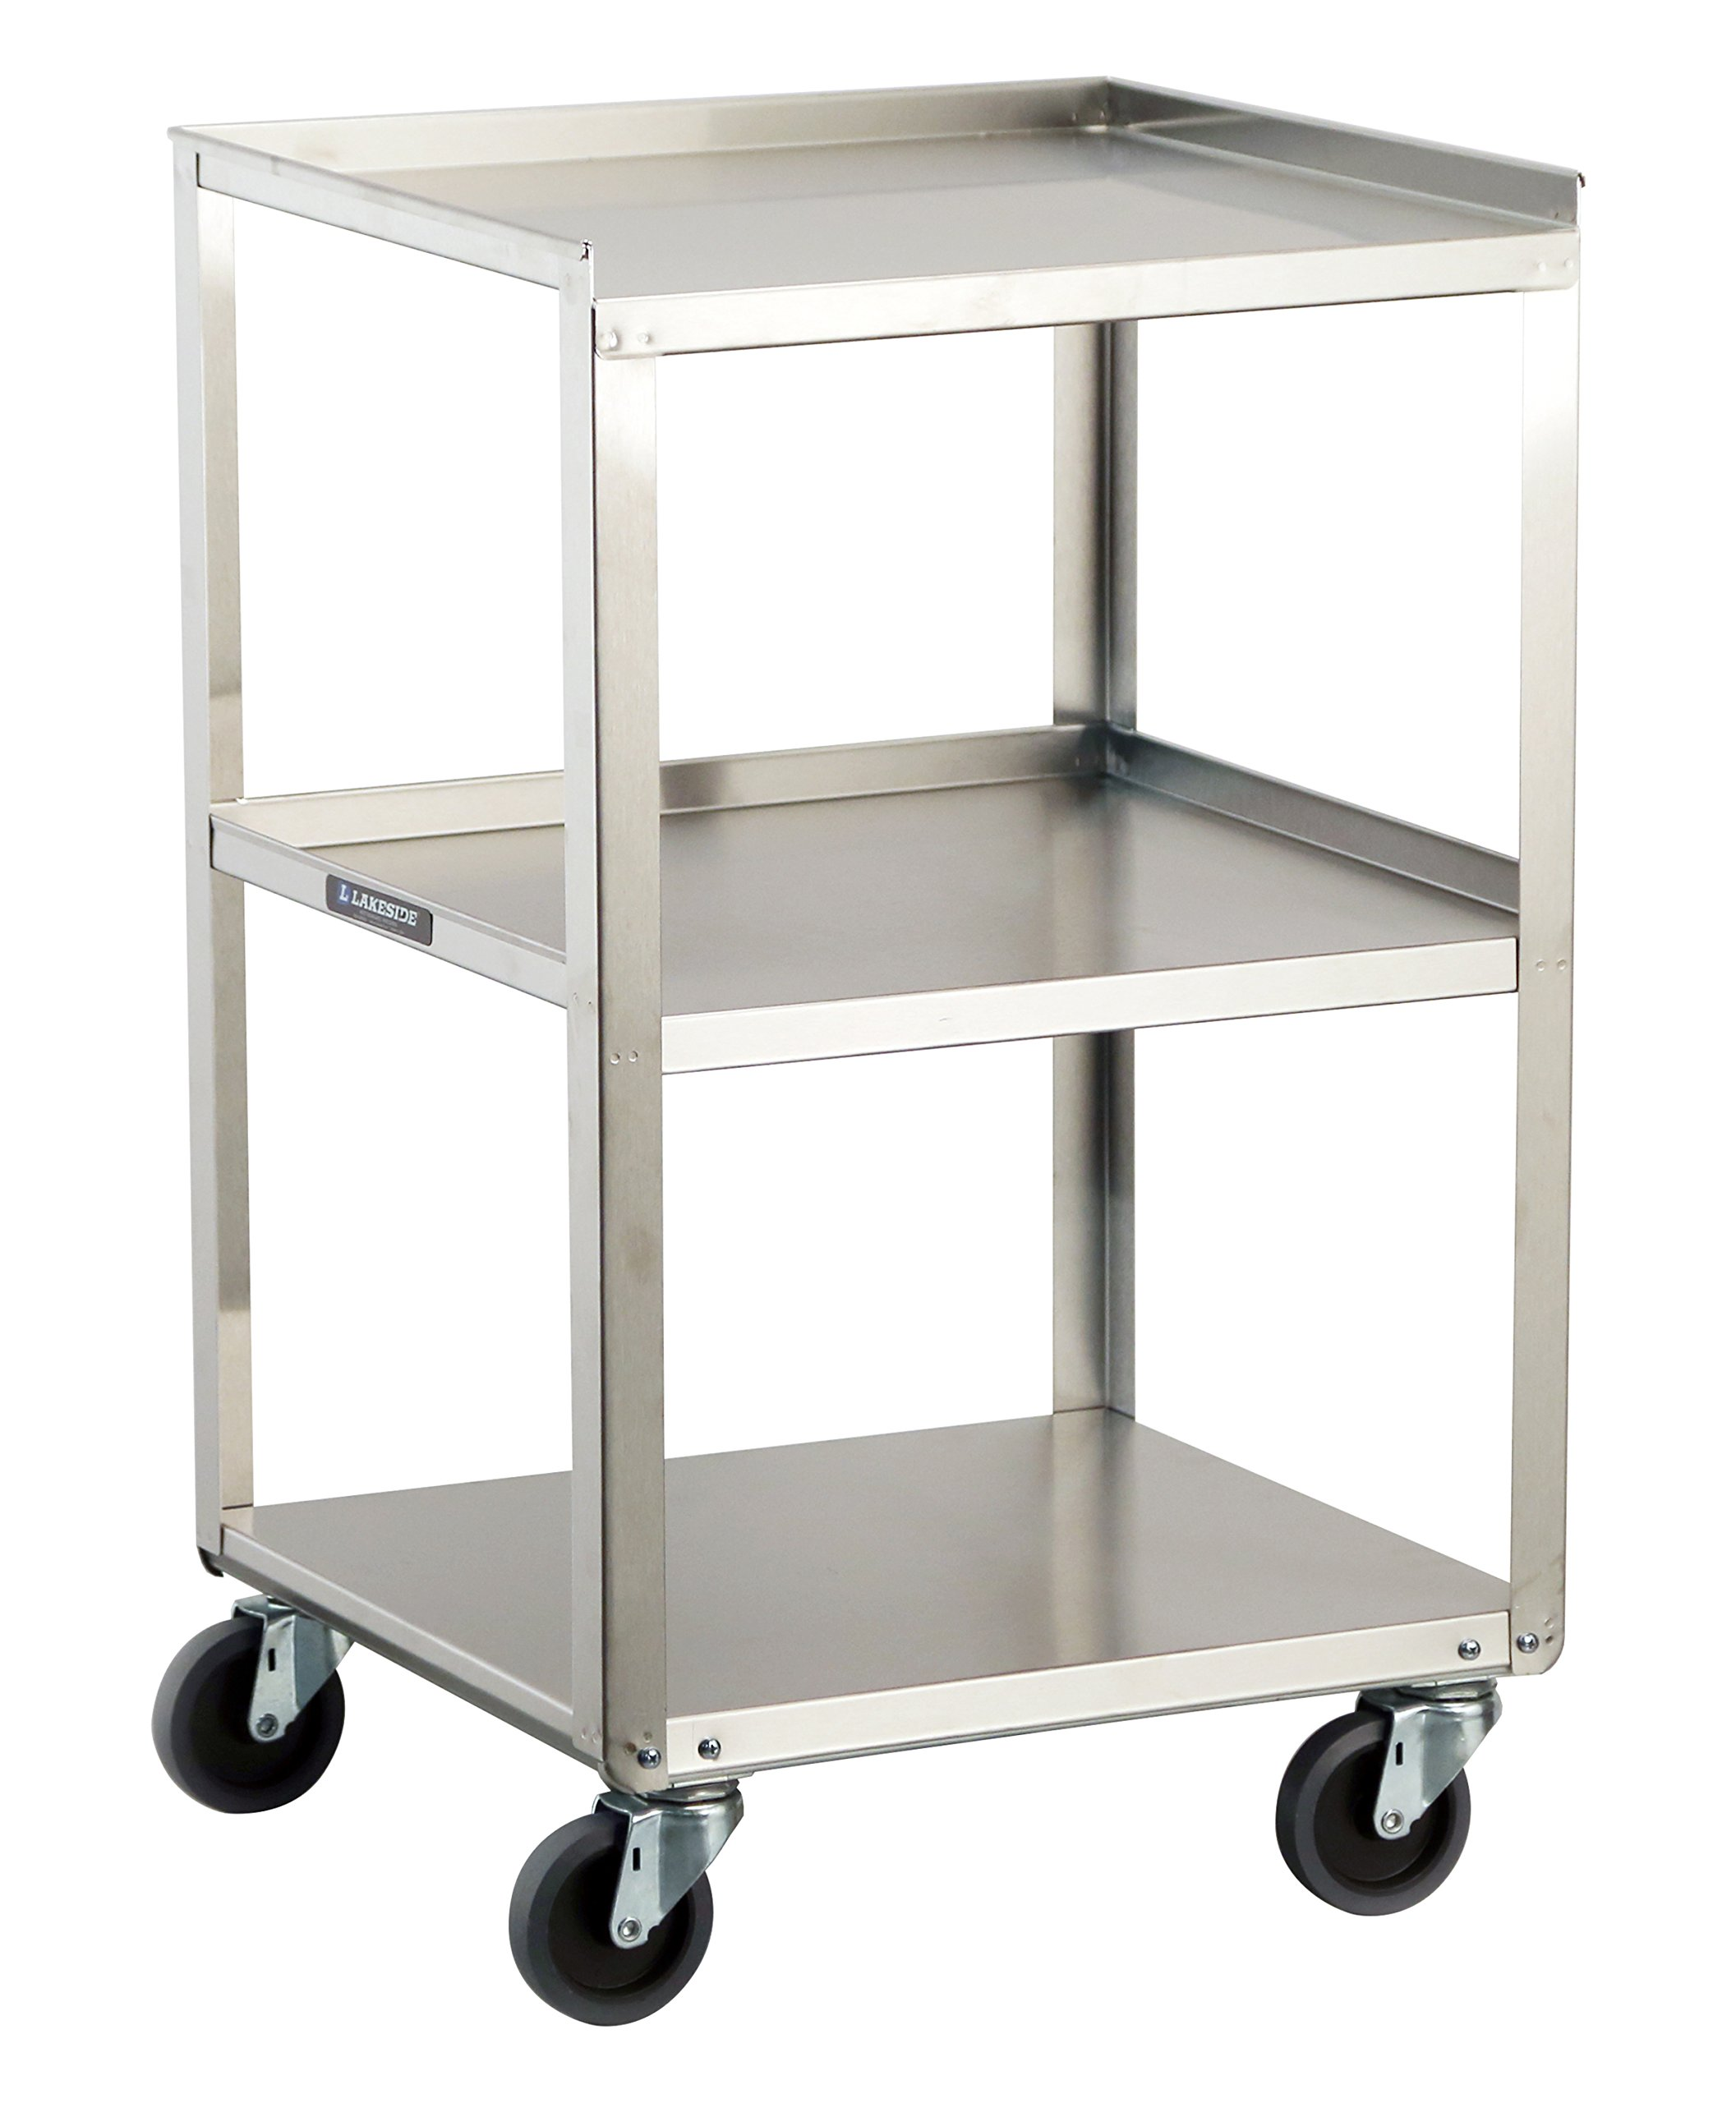 Lakeside 359 Stainless Steel Mobile, Equipment Stand, Weight Capacity 300 lb., 3 Shelves, 16-3/4'' x 18-3/4'' x 30-1/8''